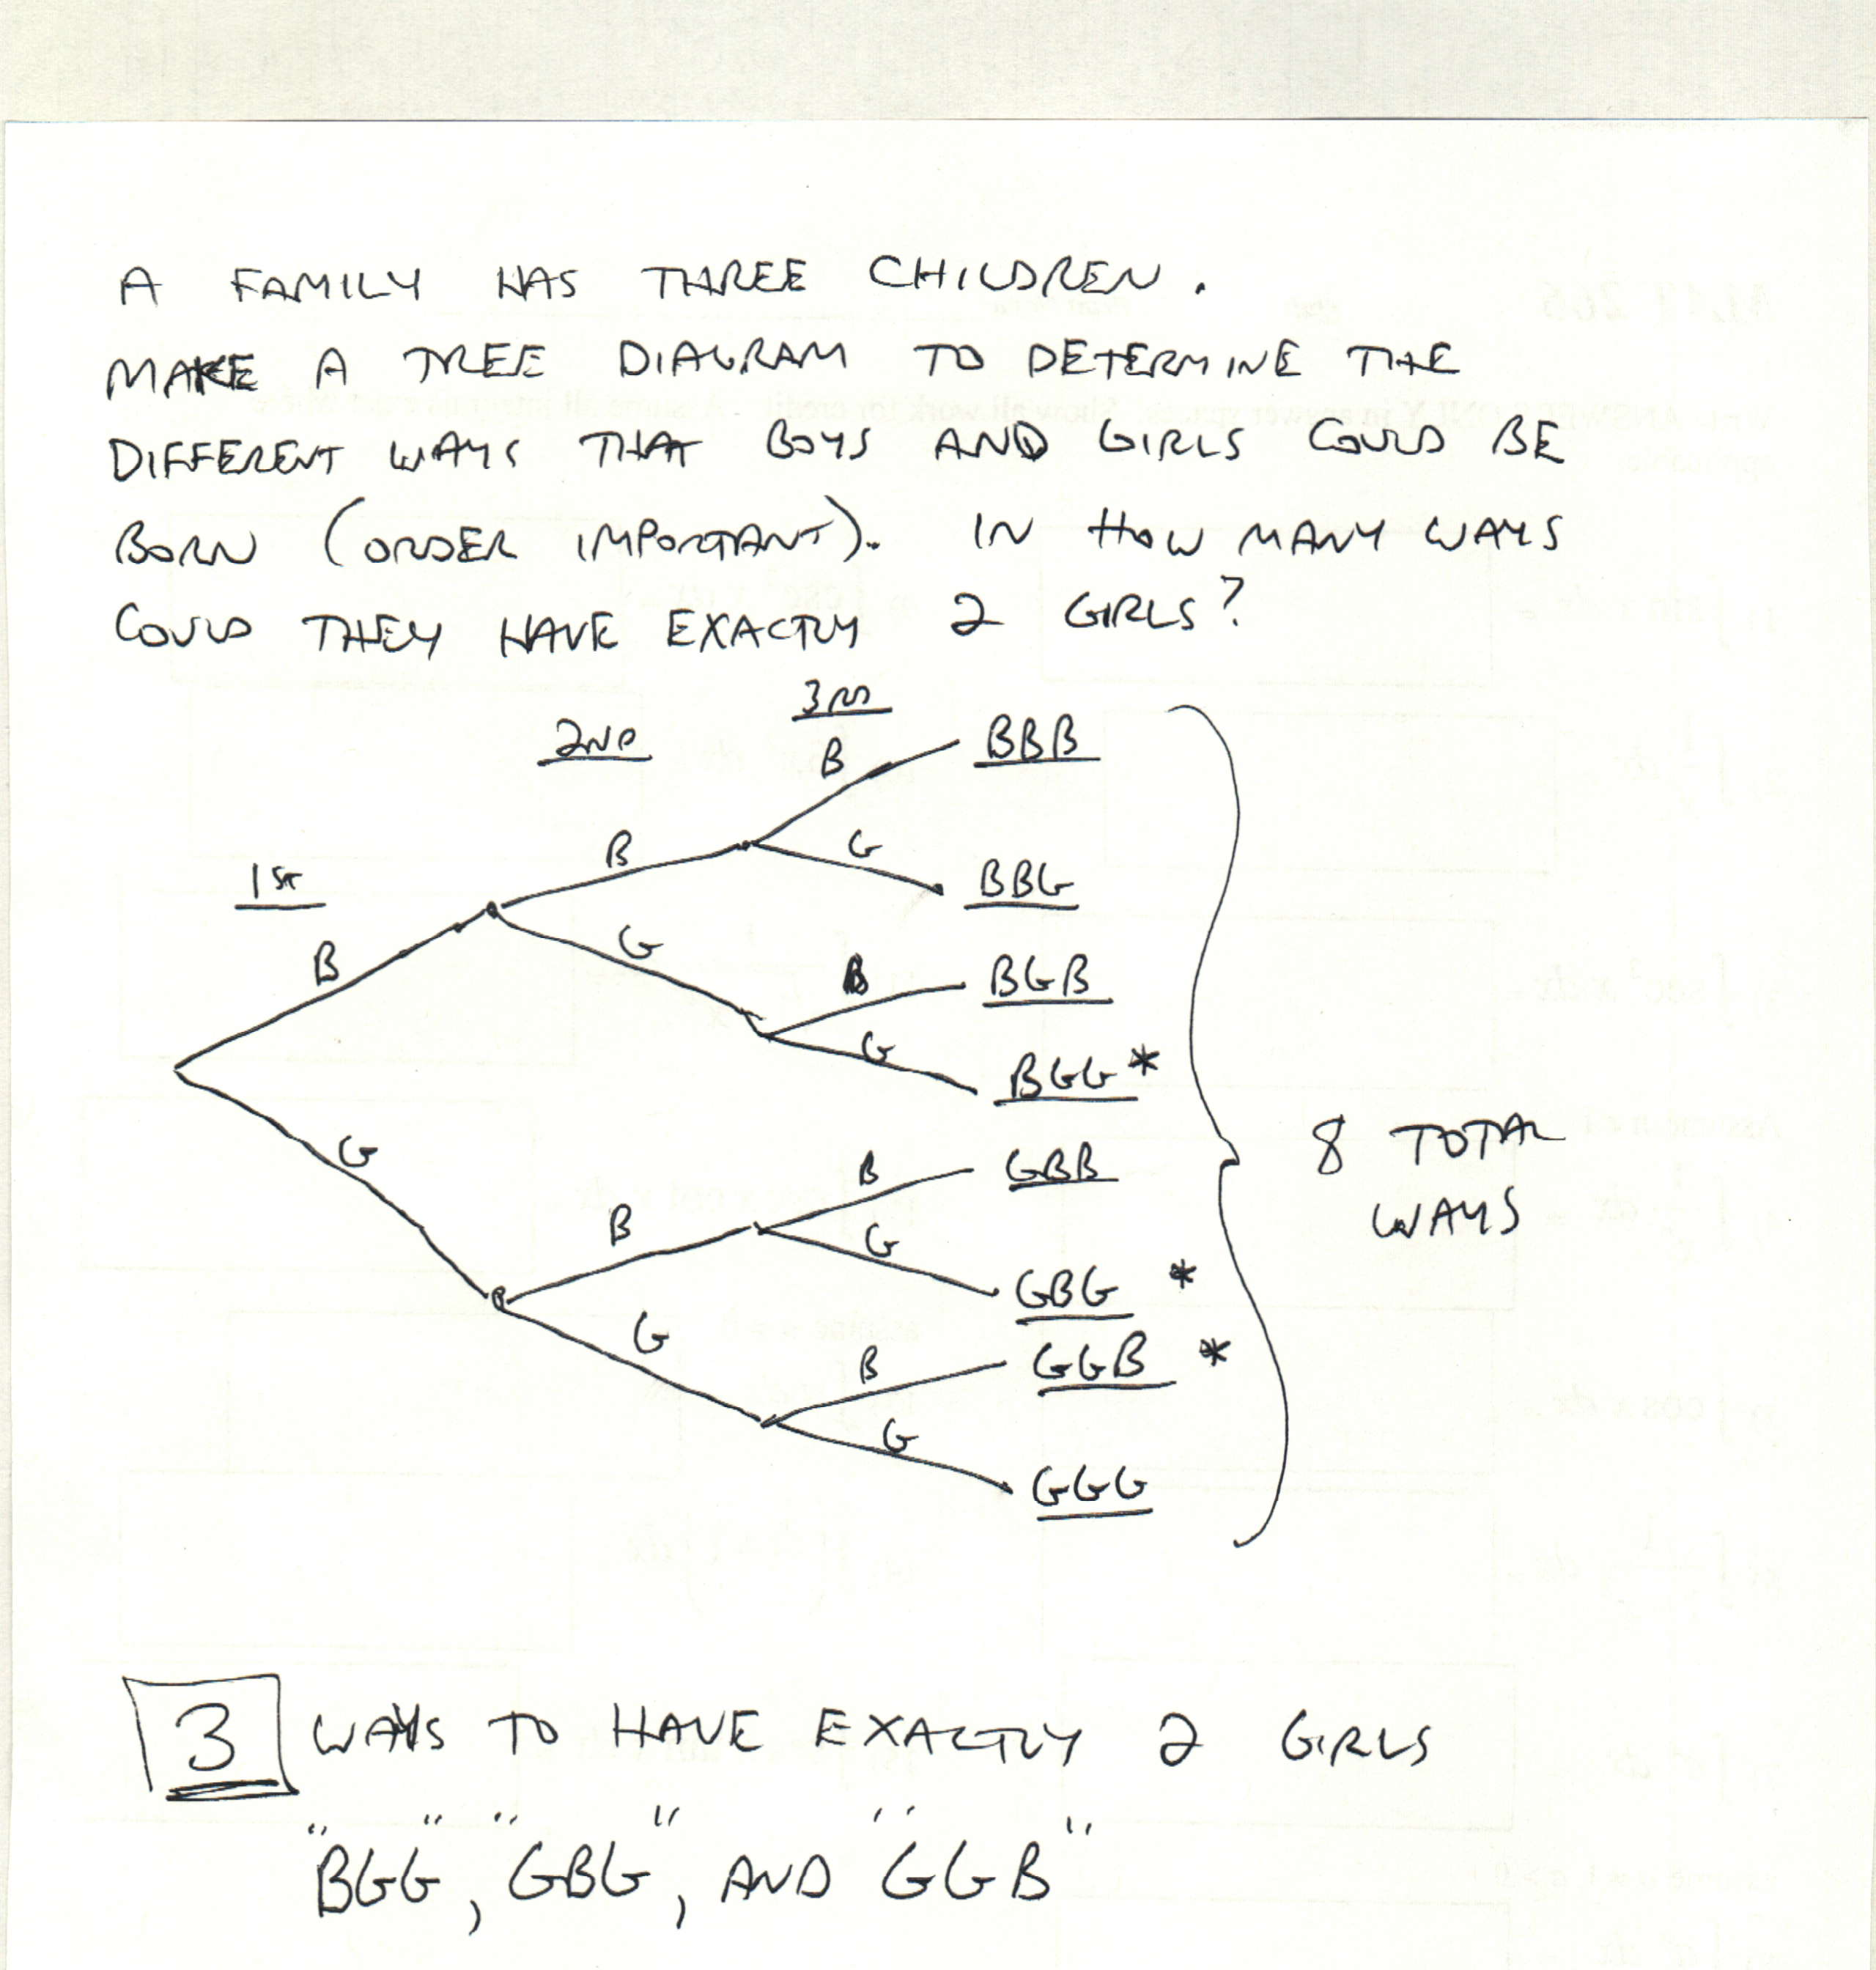 Mat 142 subject 3 bg tree ag make a tree diagram to determine the different ways that they could have boys and girls order important in how many ways could they have exactly 2 girls pooptronica Images